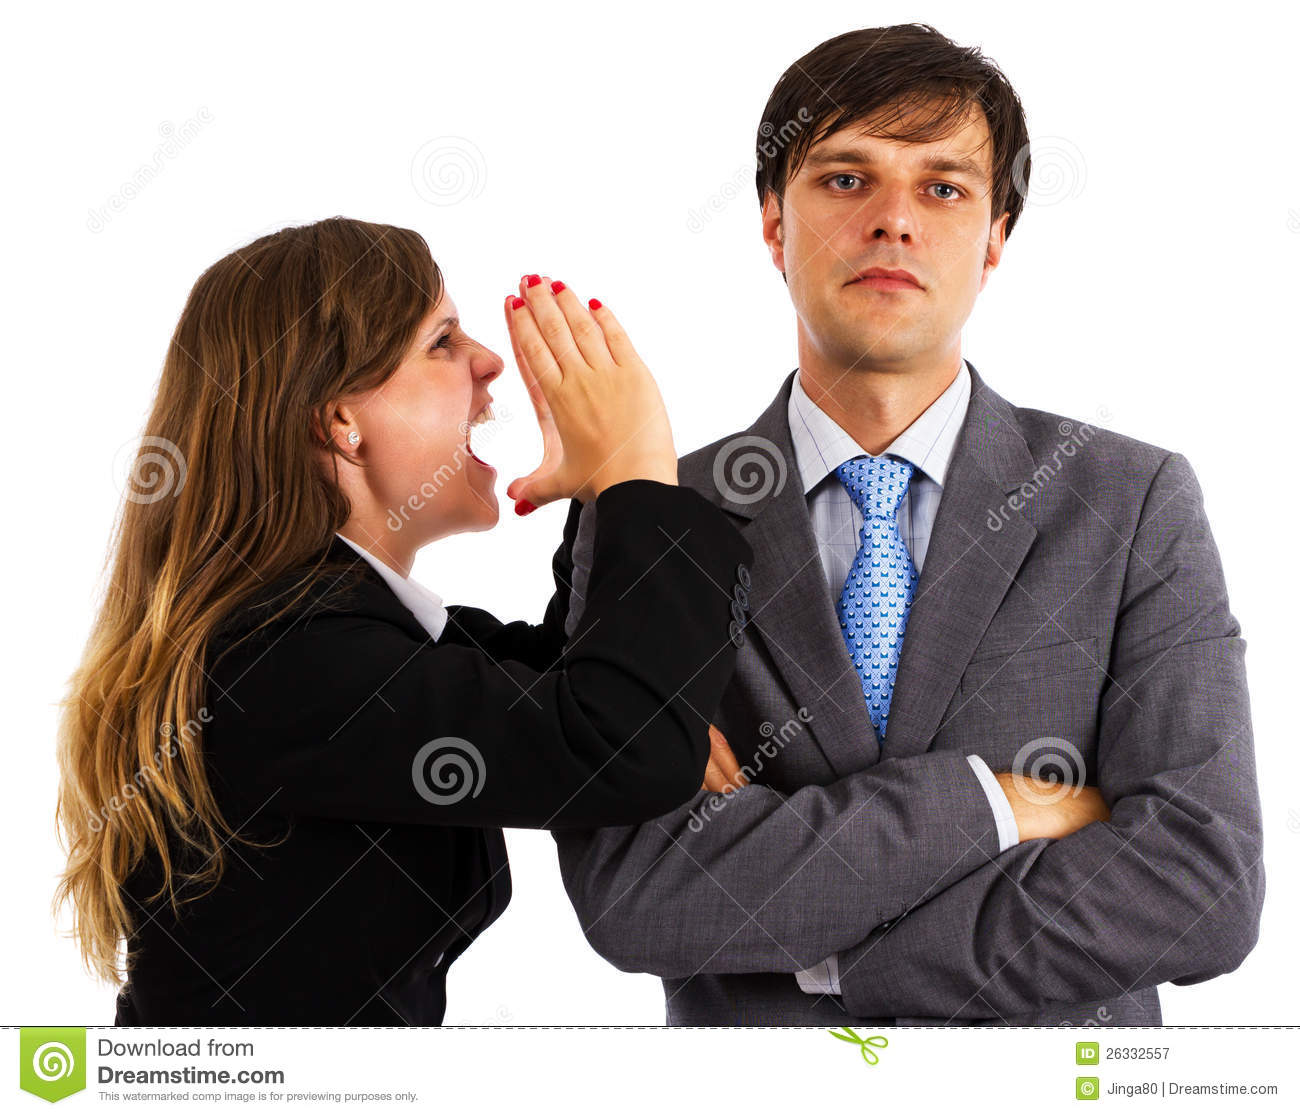 Two business colleagues having an argument over white background.